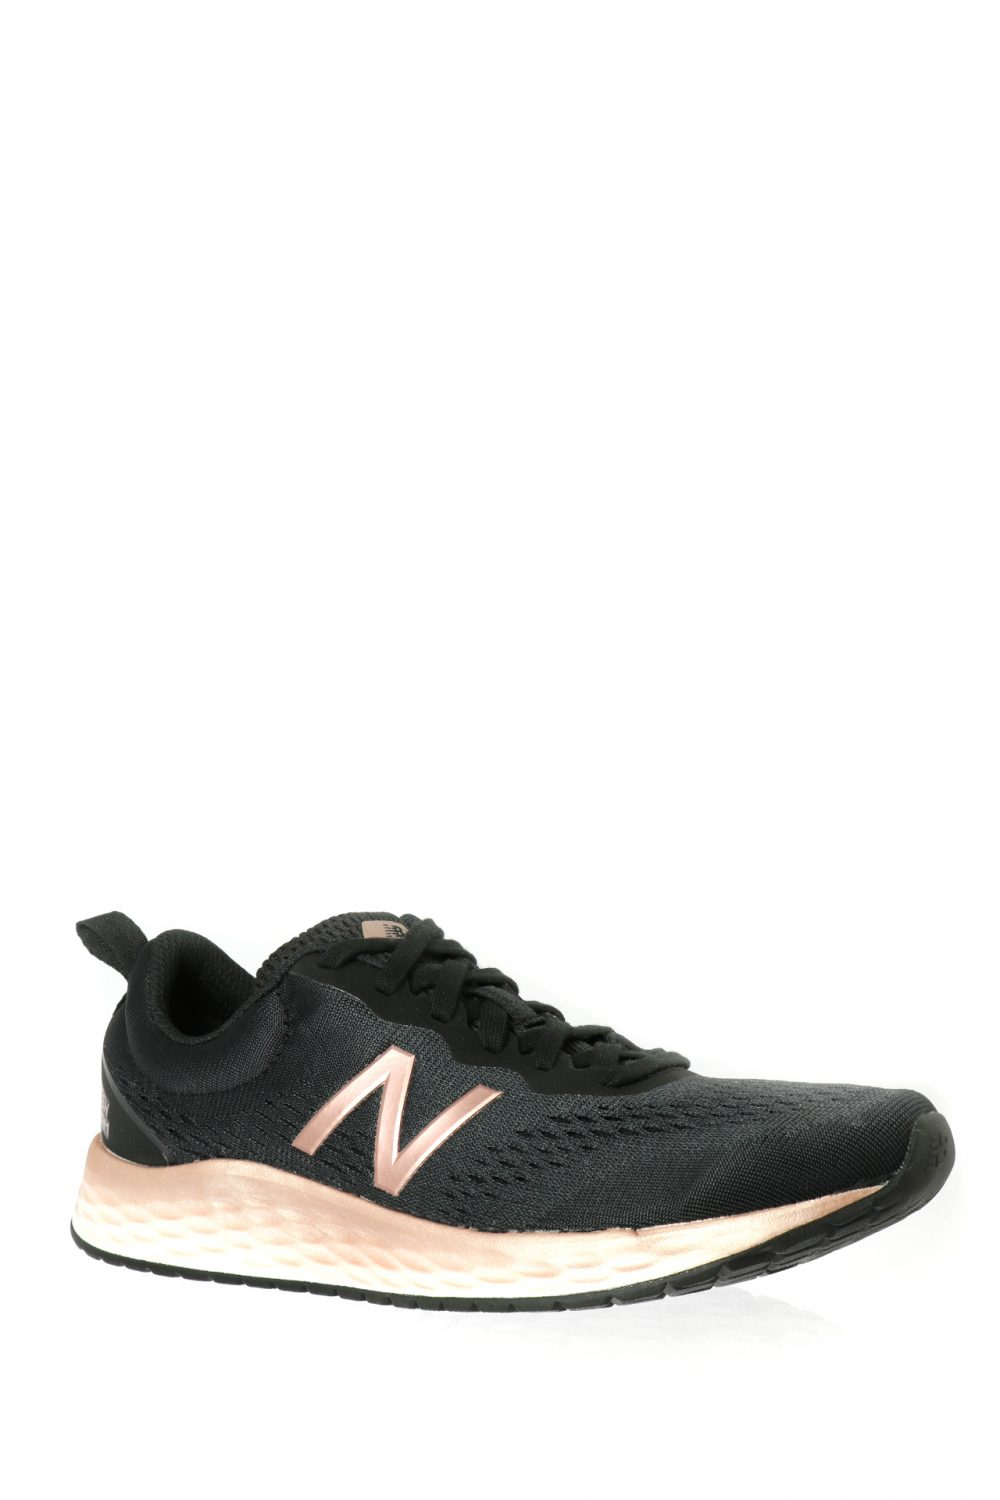 New Balance FRESH FOAM AR*